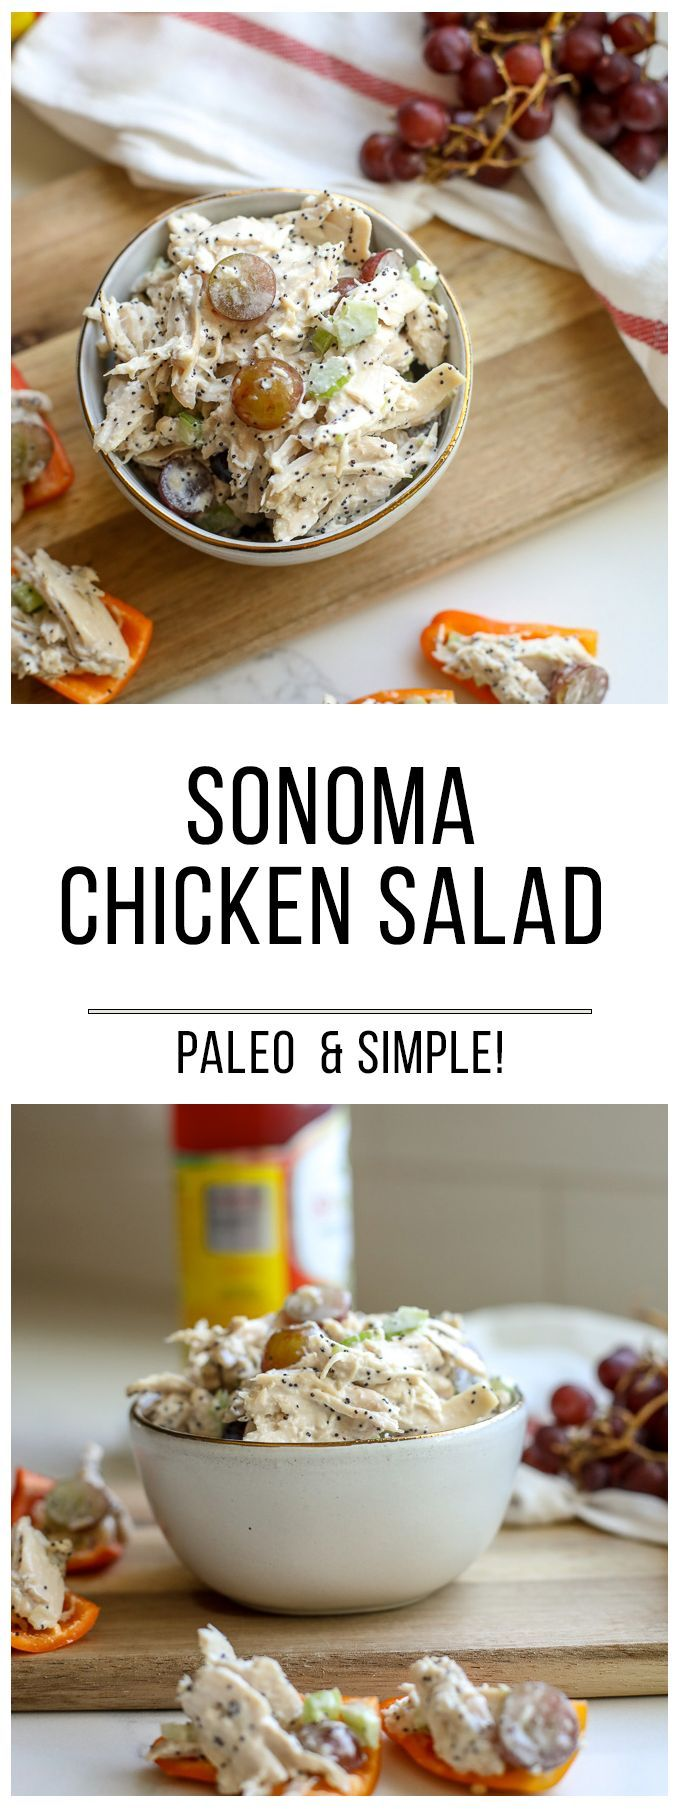 This Sonoma Chicken Salad is a favorite to people of any age or diet! Paleo and perfect for a quick lunch you can prep ahead of time!